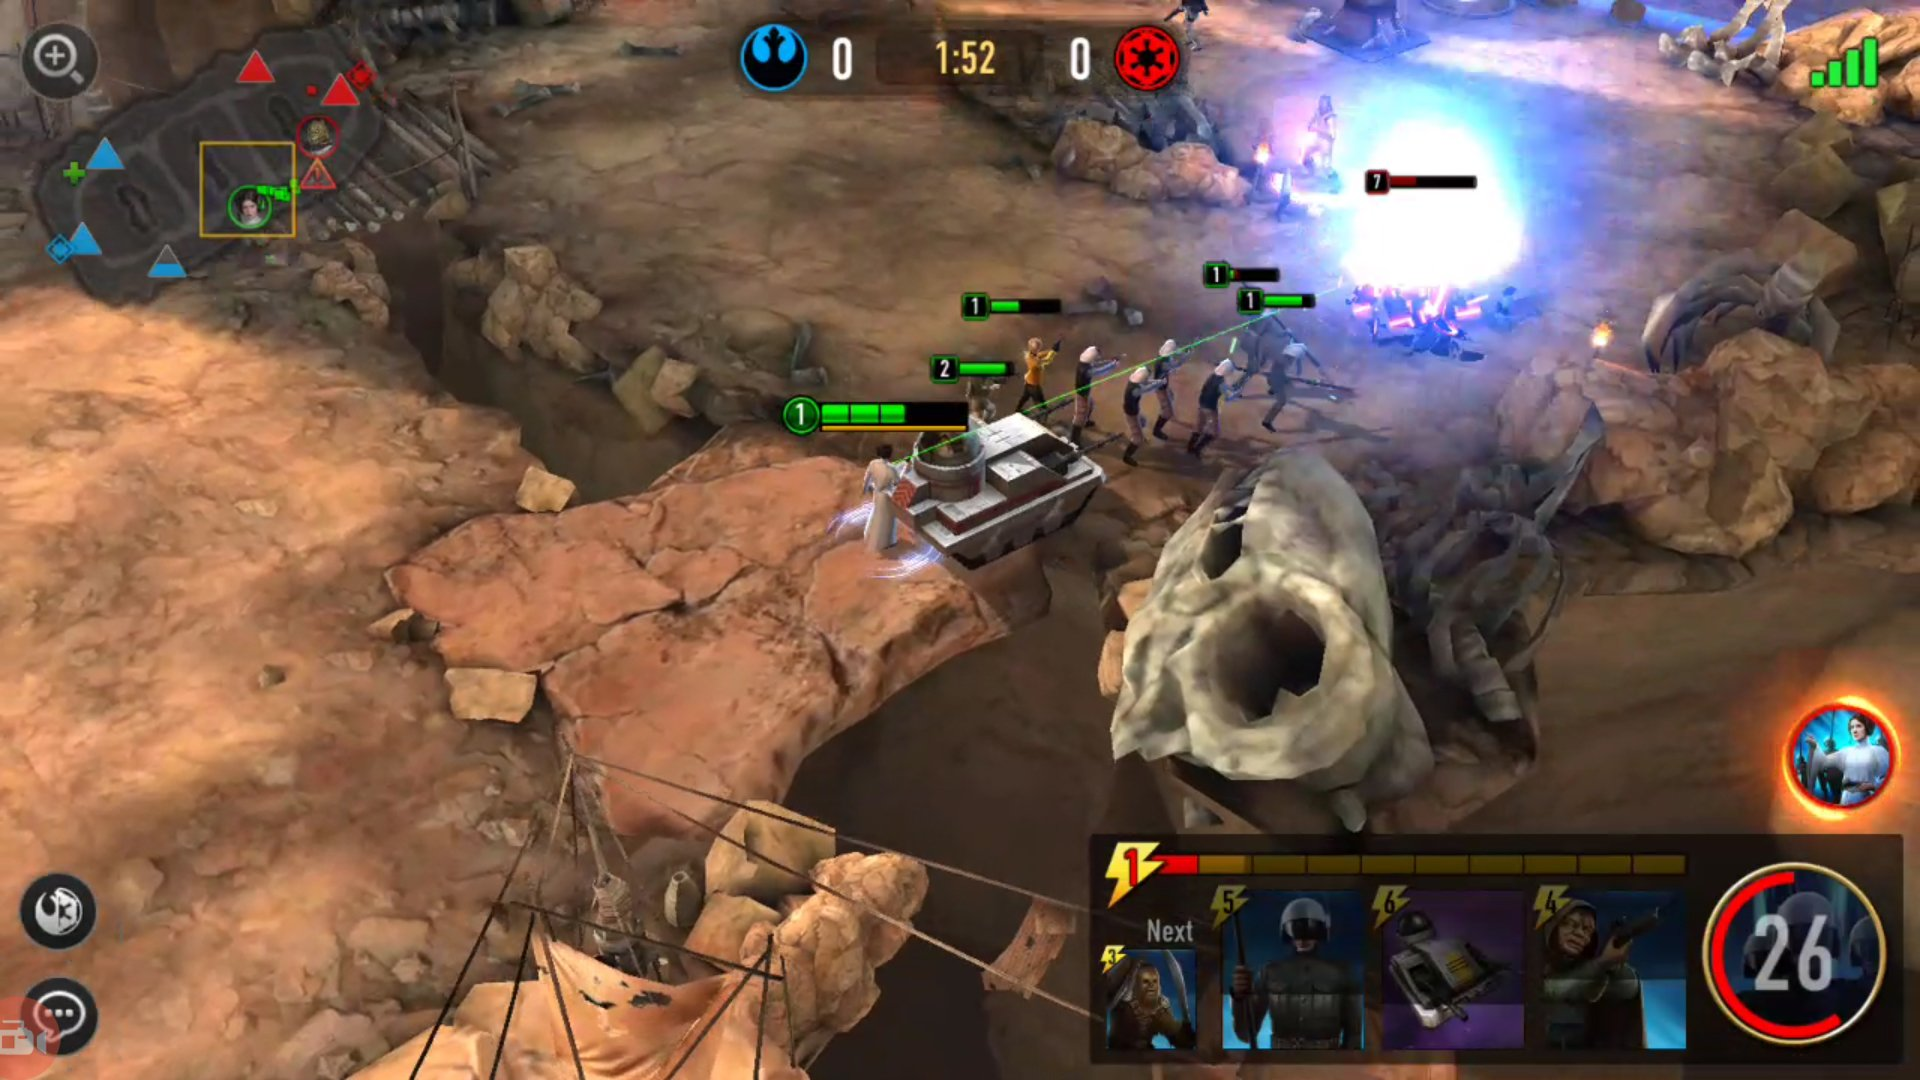 Arena Game Star Wars Force Arena Review The Best And Worst Of Mobile Gaming